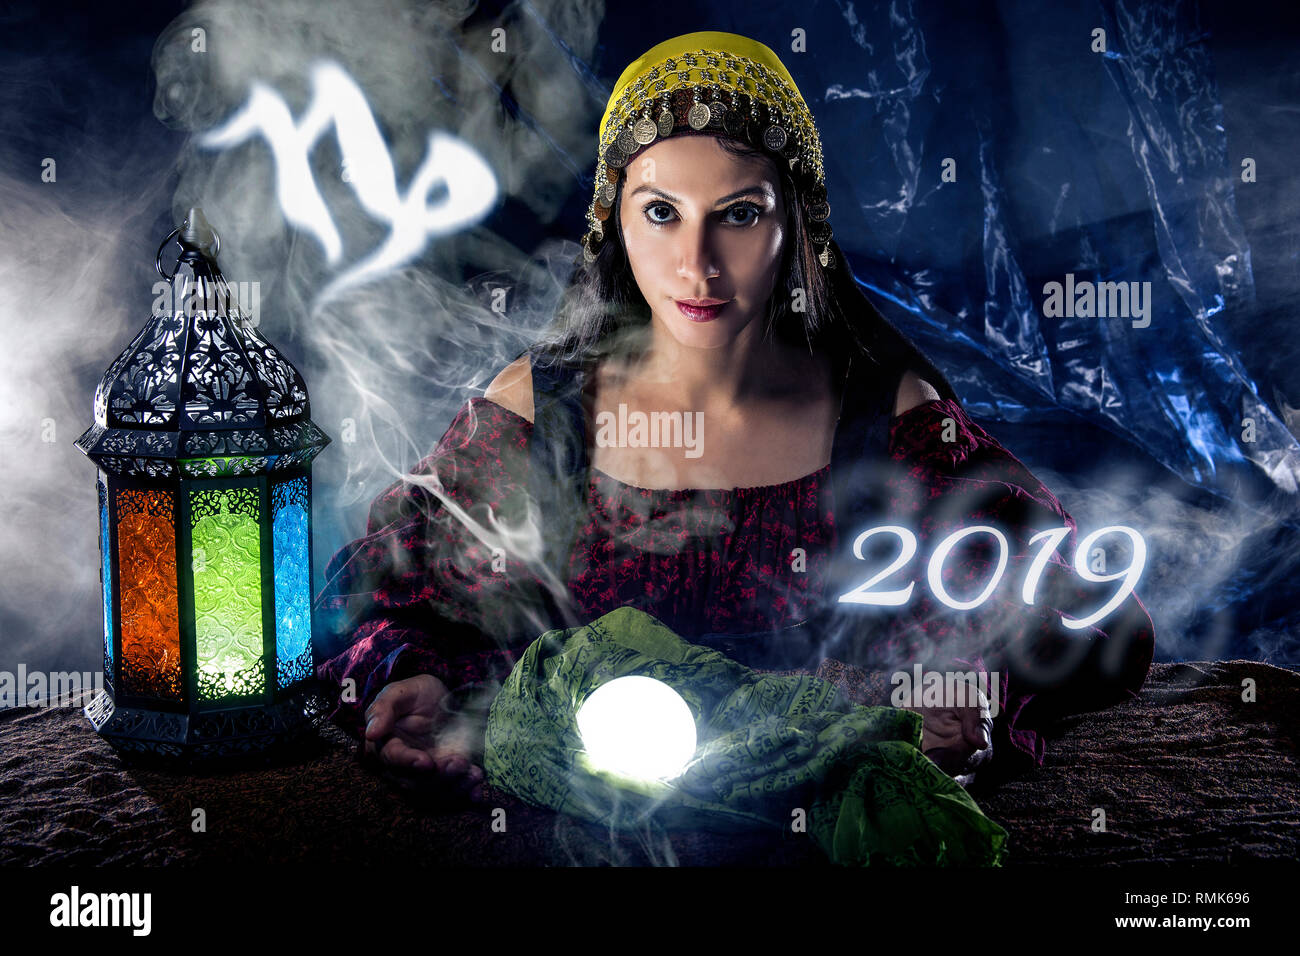 Psychic or fortune teller with crystal ball and horoscope zodiac sign of capricorn - Stock Image